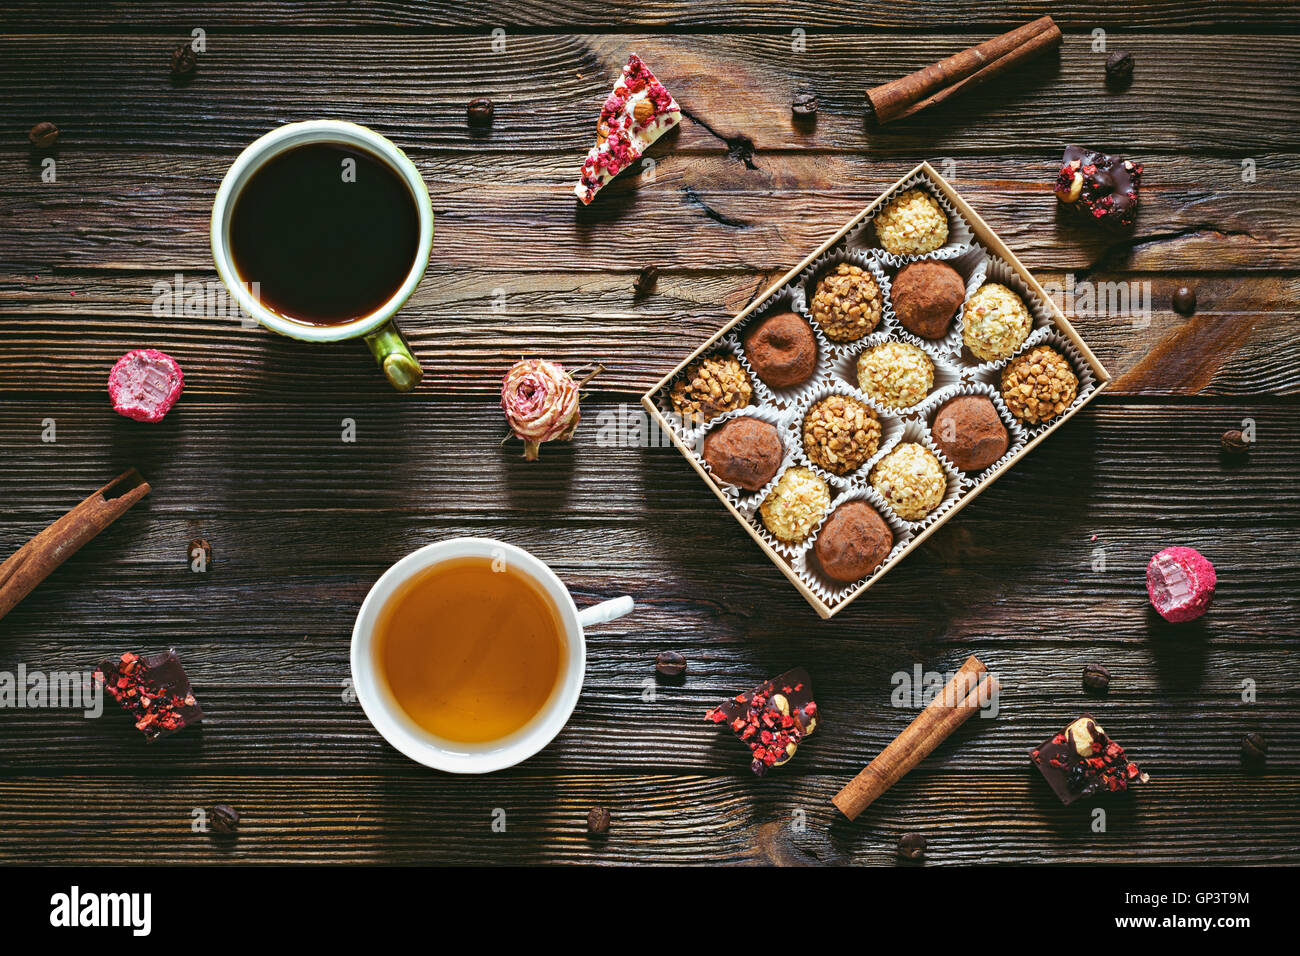 Sweet desserts: chocolate truffles, chocolate candy barks, cup of coffee, cup of green tea, cinnamon stick and coffee - Stock Image